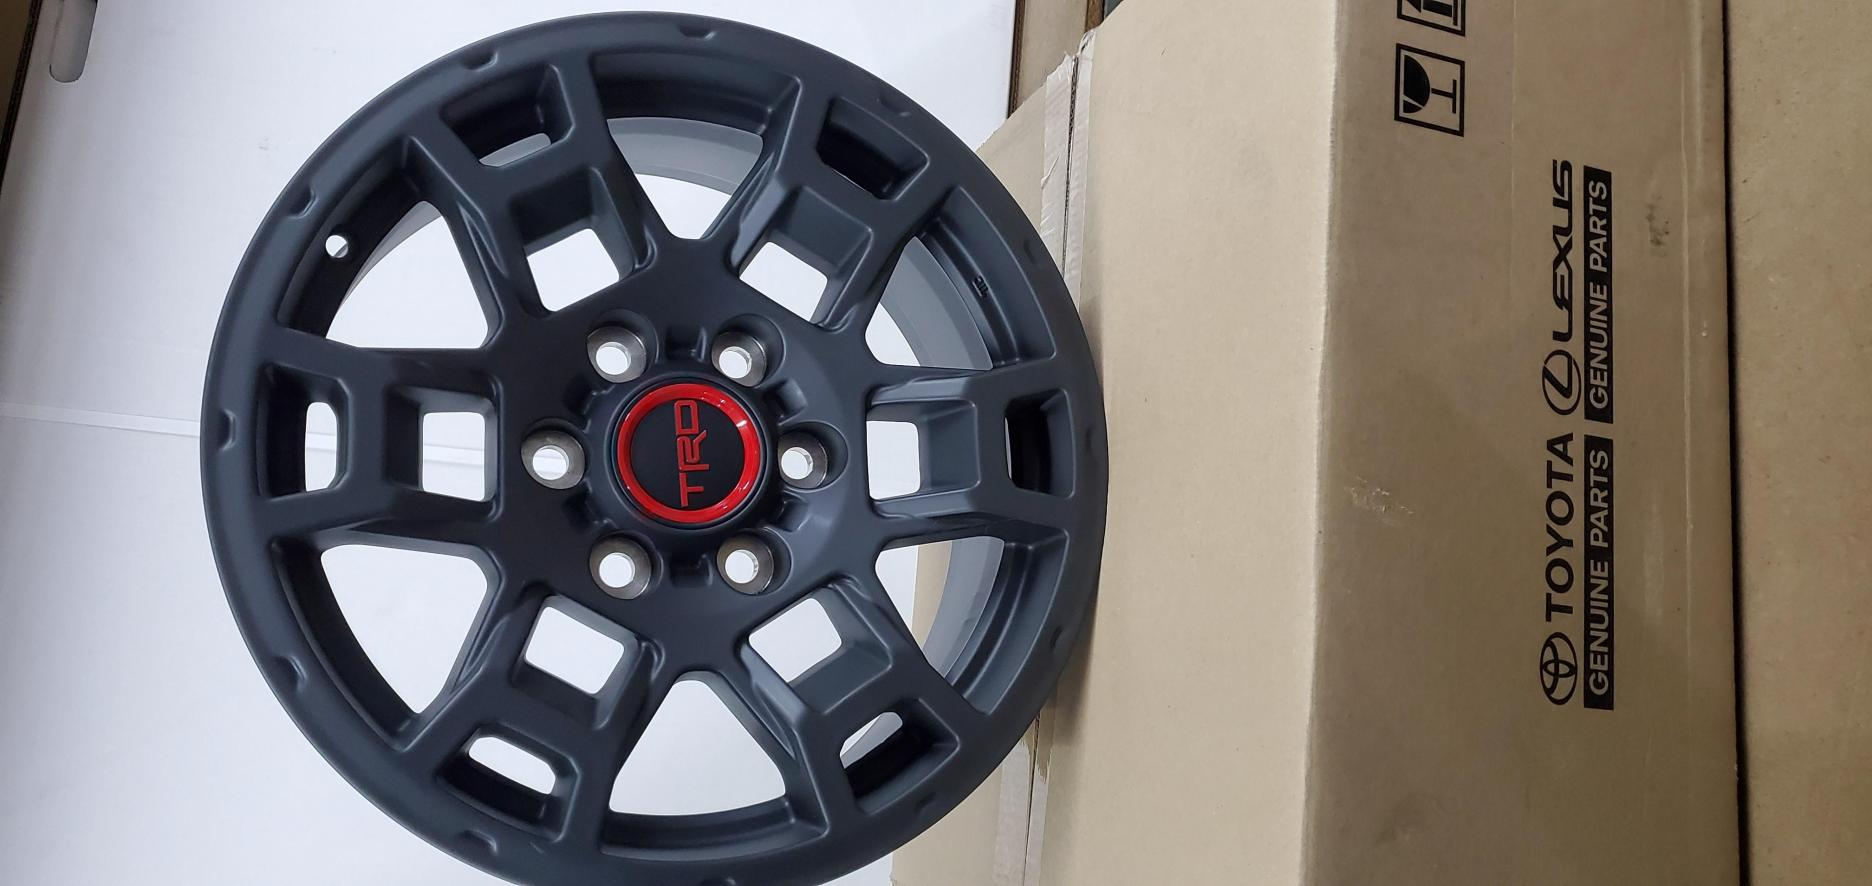 Pictures of the new 2021 trd pro wheels-4-jpg